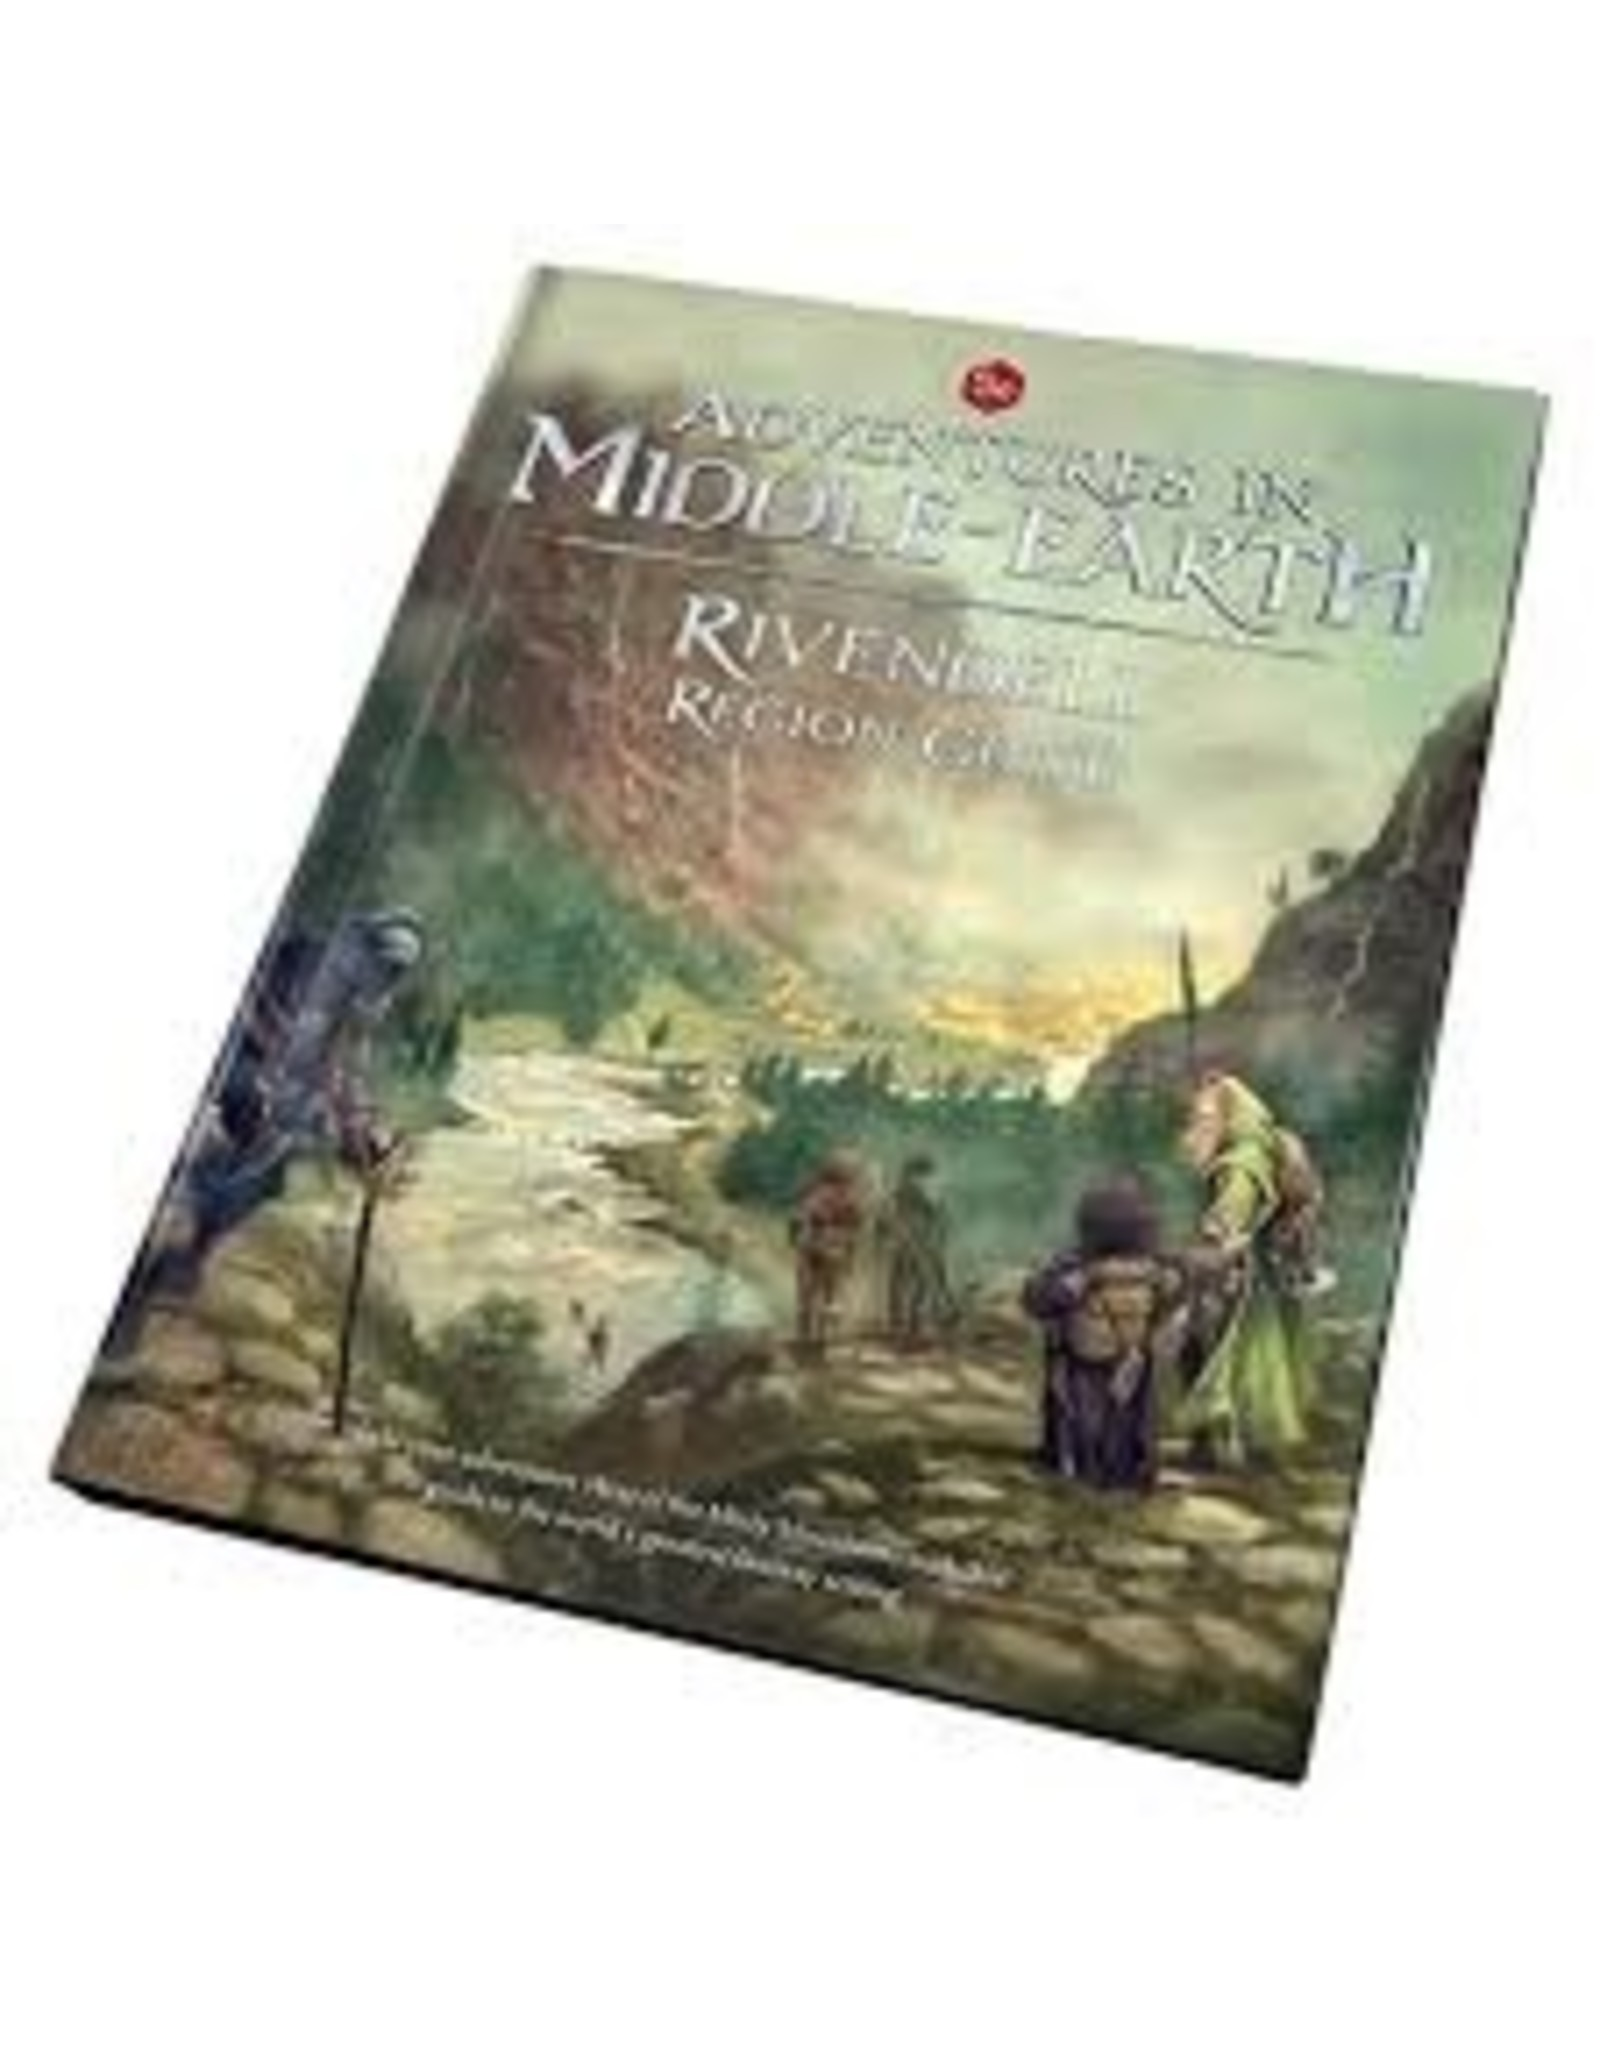 Adventures in Middle Earth Rivendell Guide